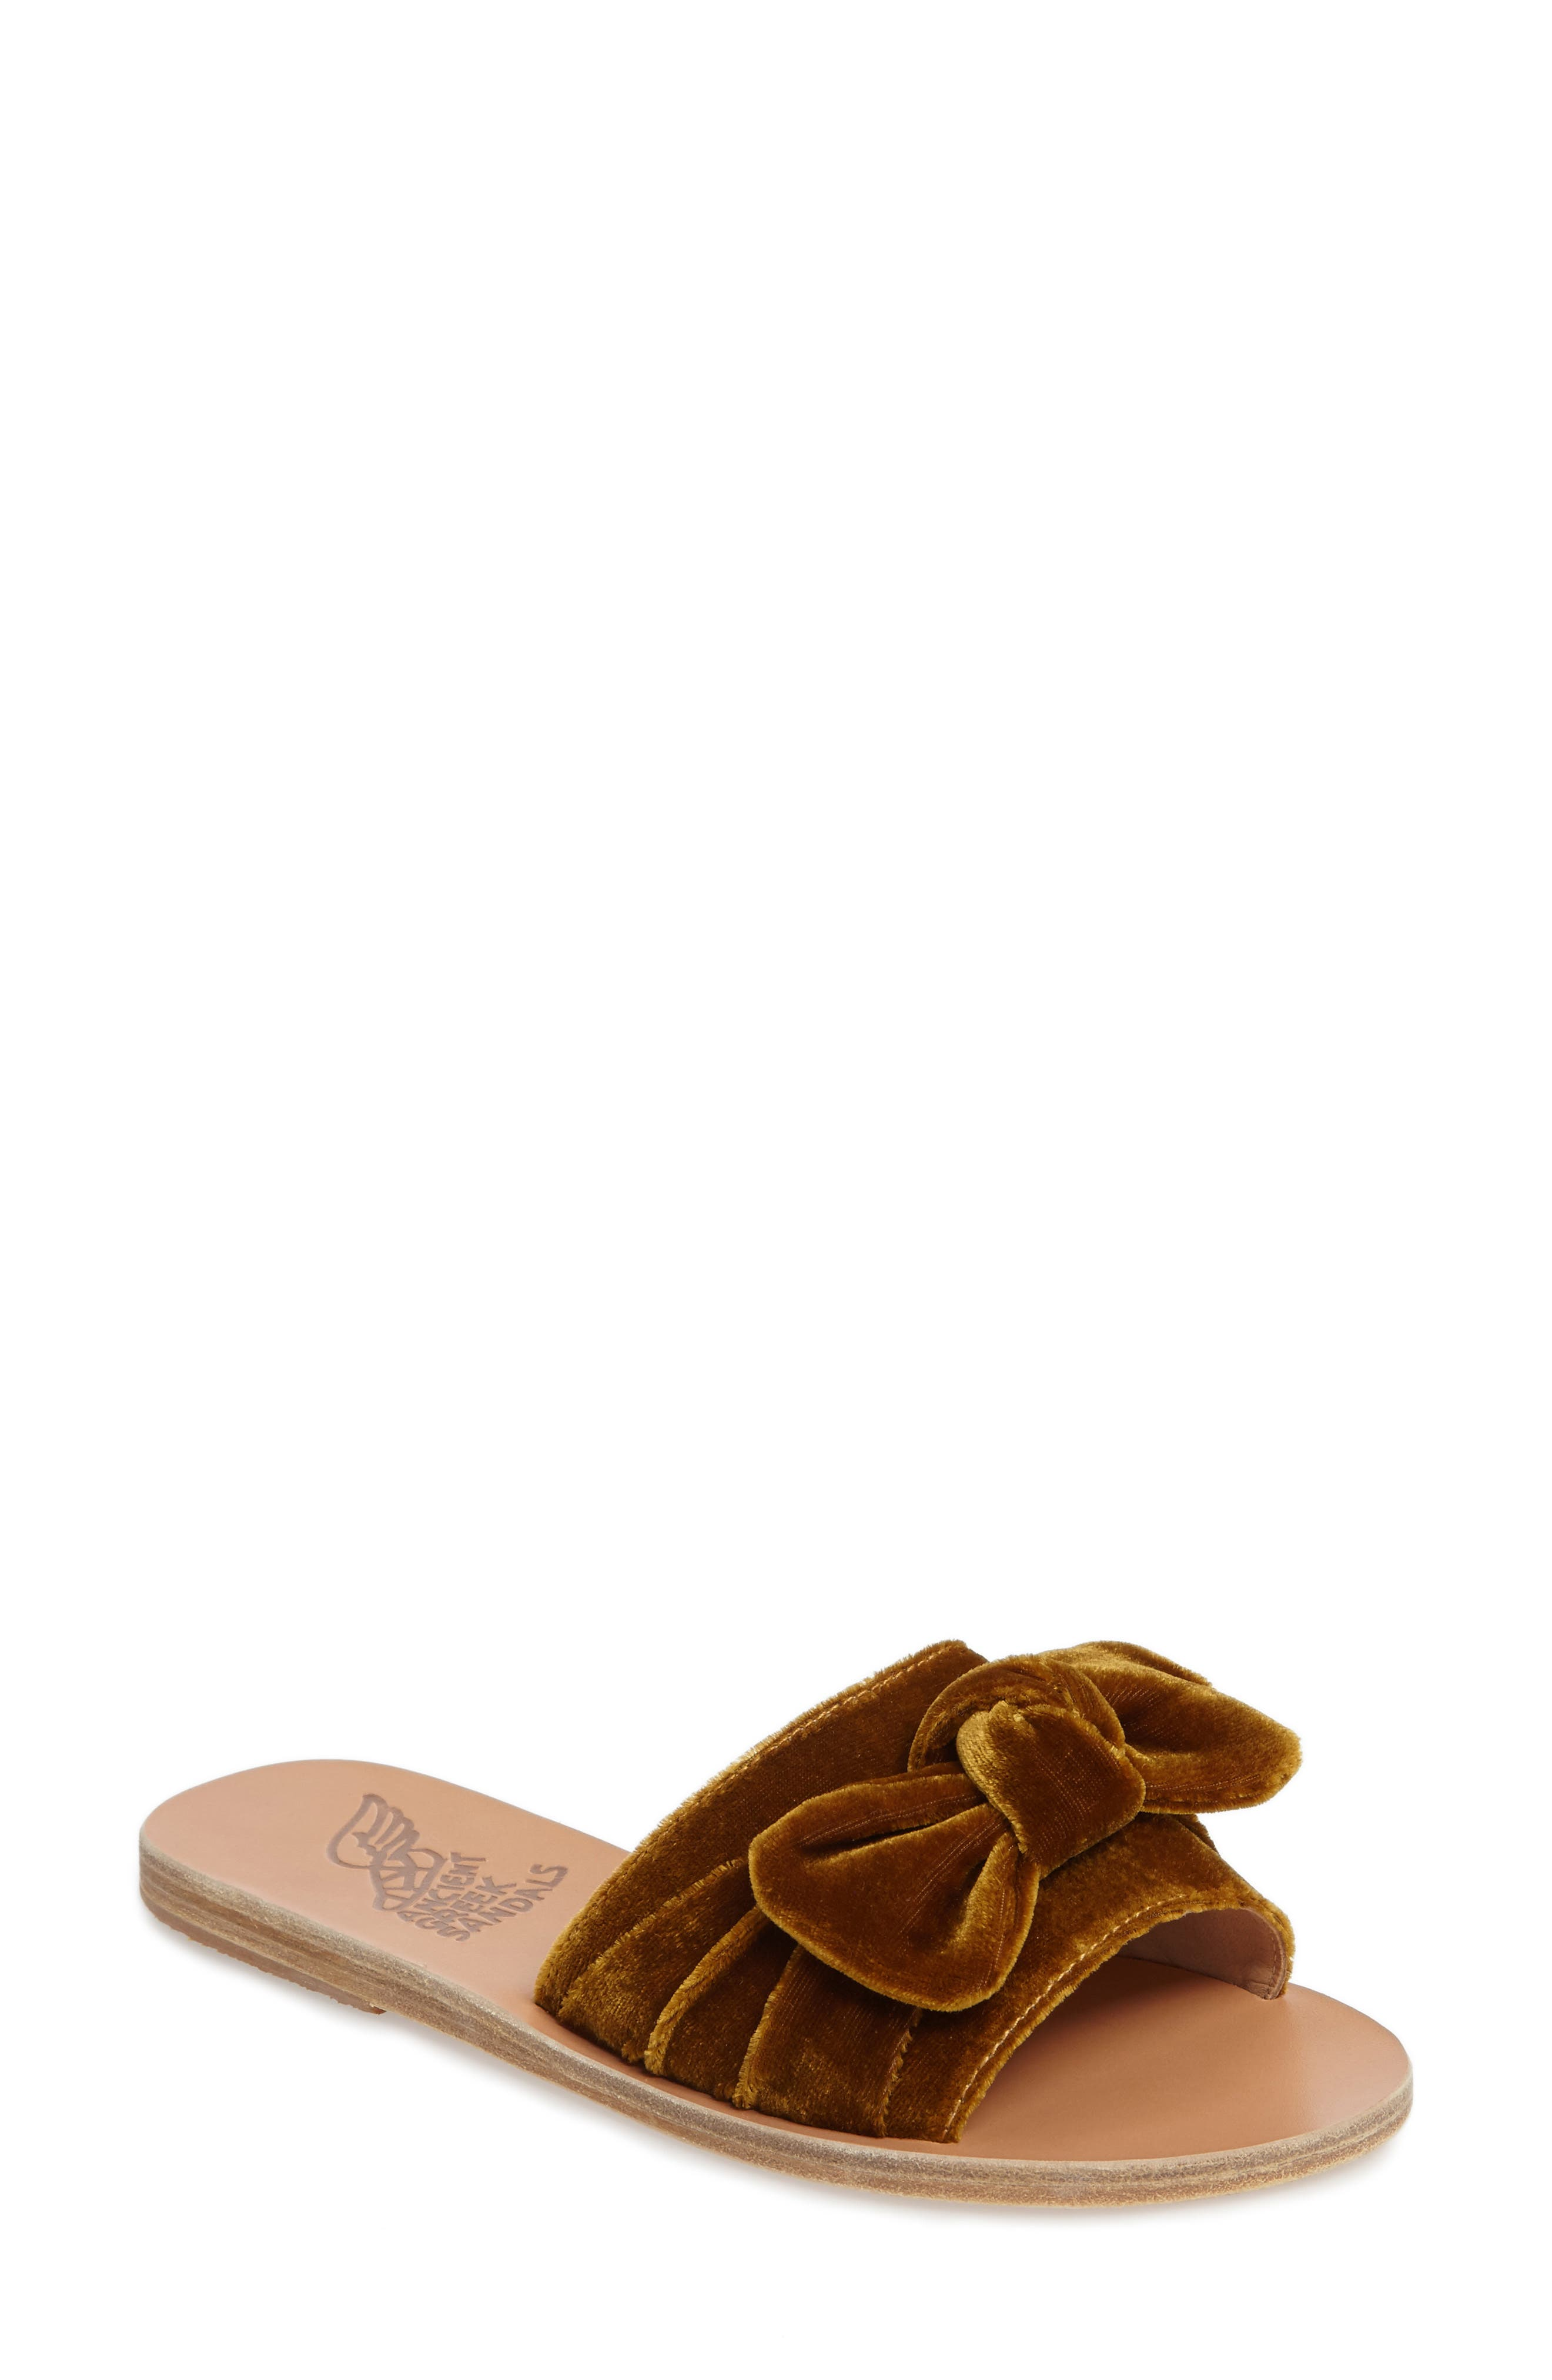 Alternate Image 1 Selected - Ancient Greek Sandals Taygete Bow Slide Sandal (Women)